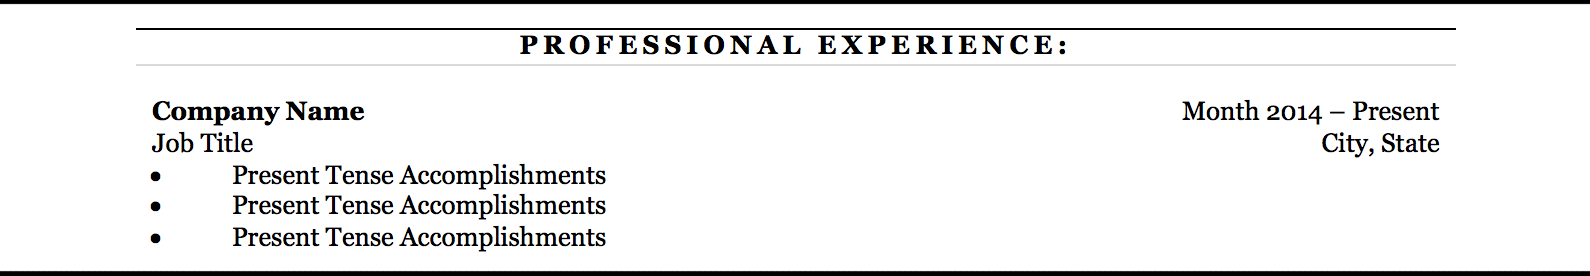 Don't : Align your bullet points with the text above. It leaves your resume with a lot of wasted space